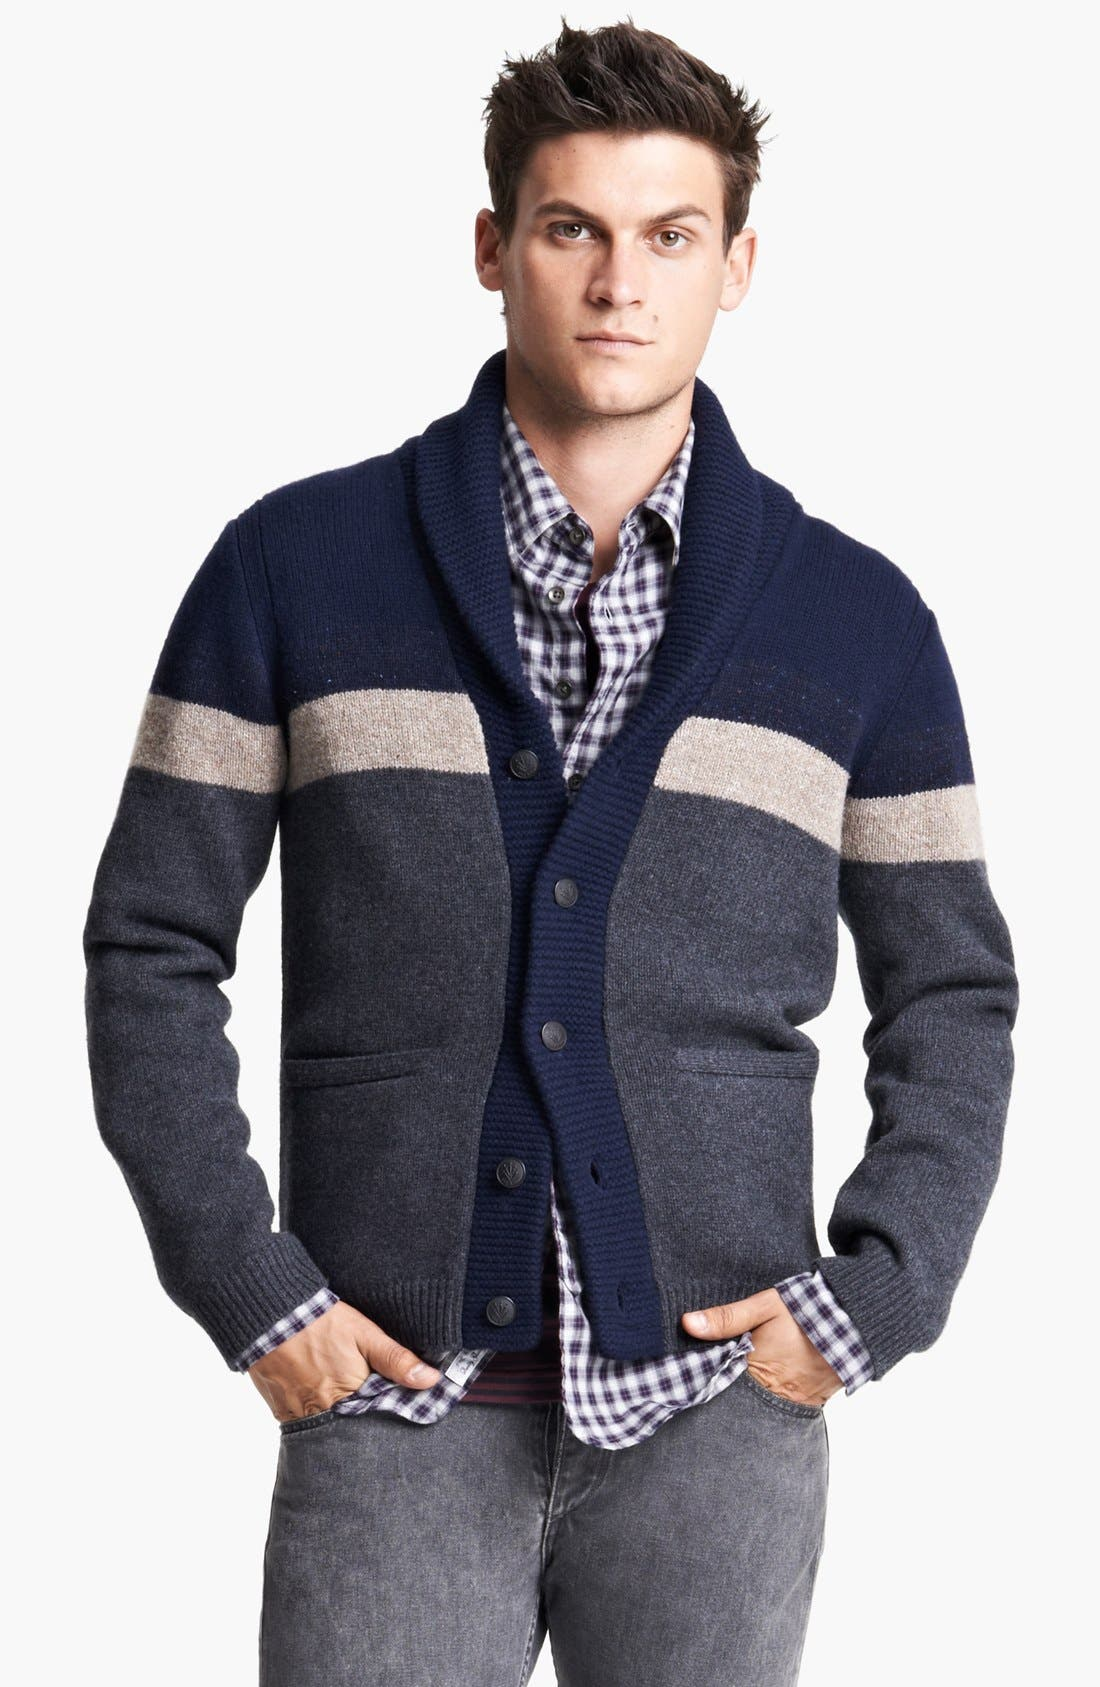 Main Image - rag & bone 'Teddy' Shawl Cardigan